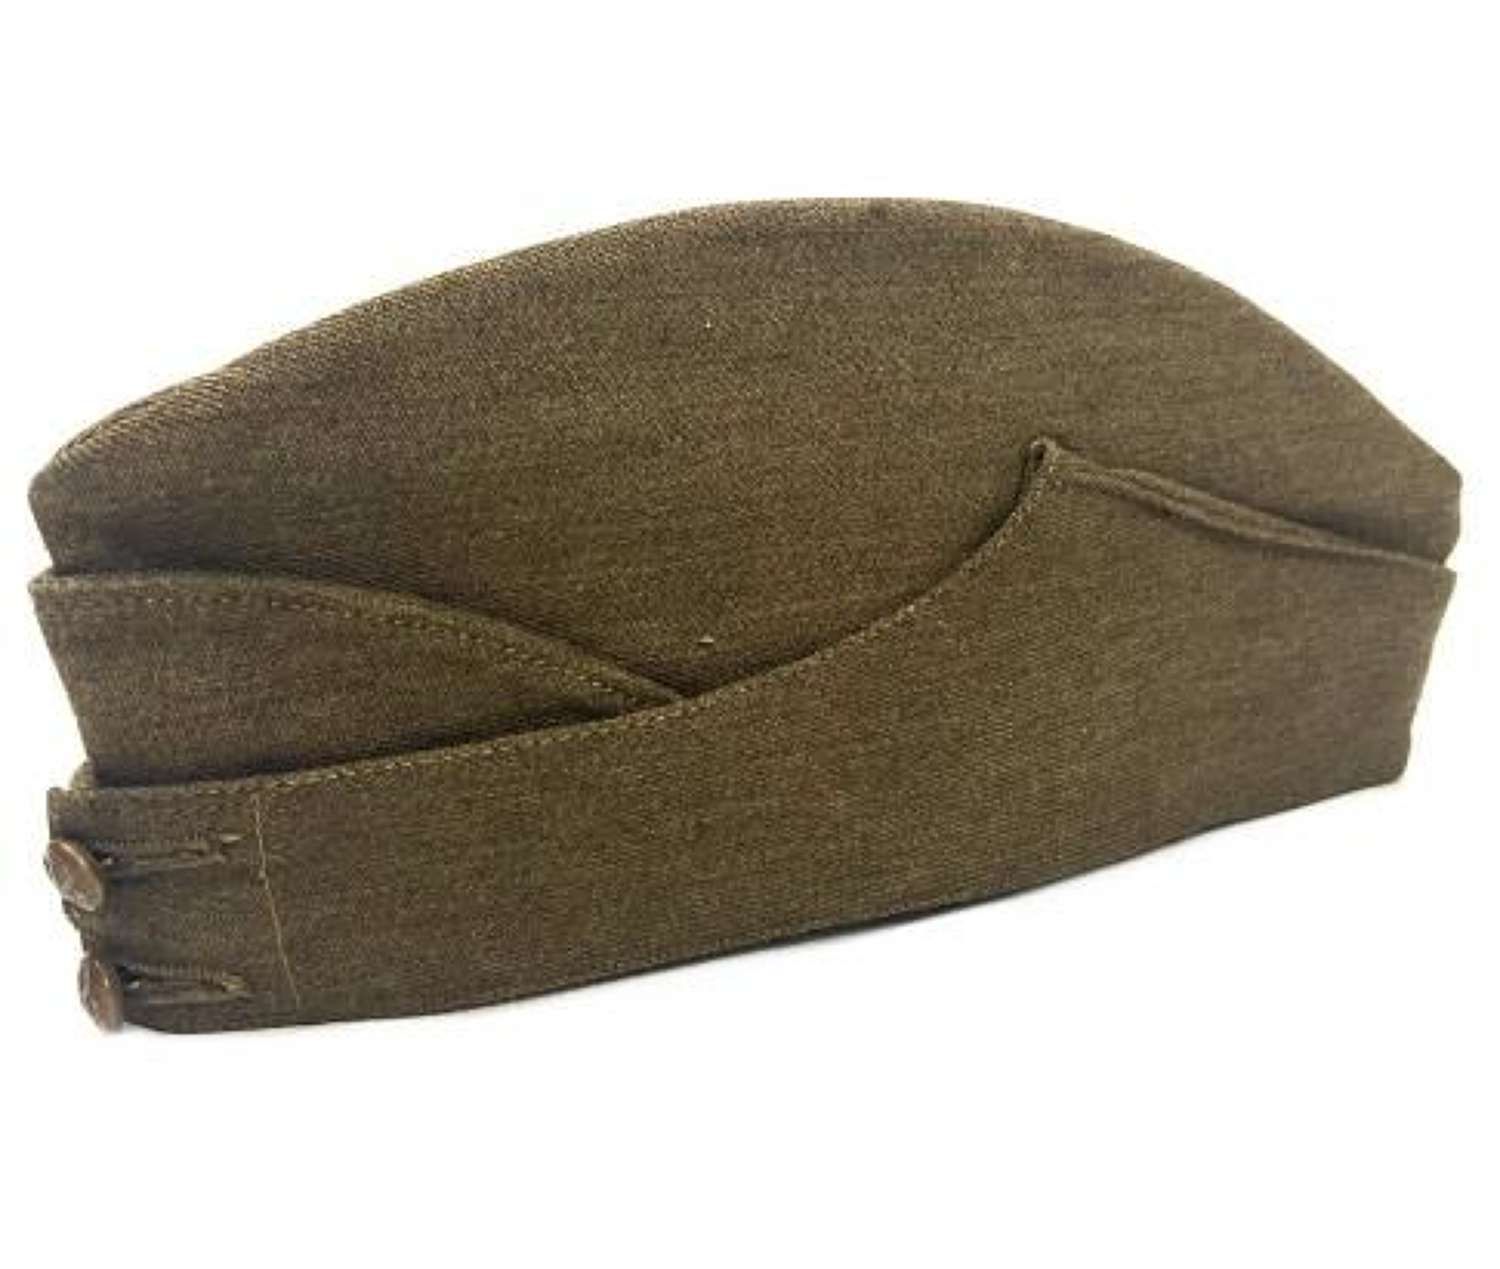 Original 1940 Dated British Army Field Service Cap - Size 7